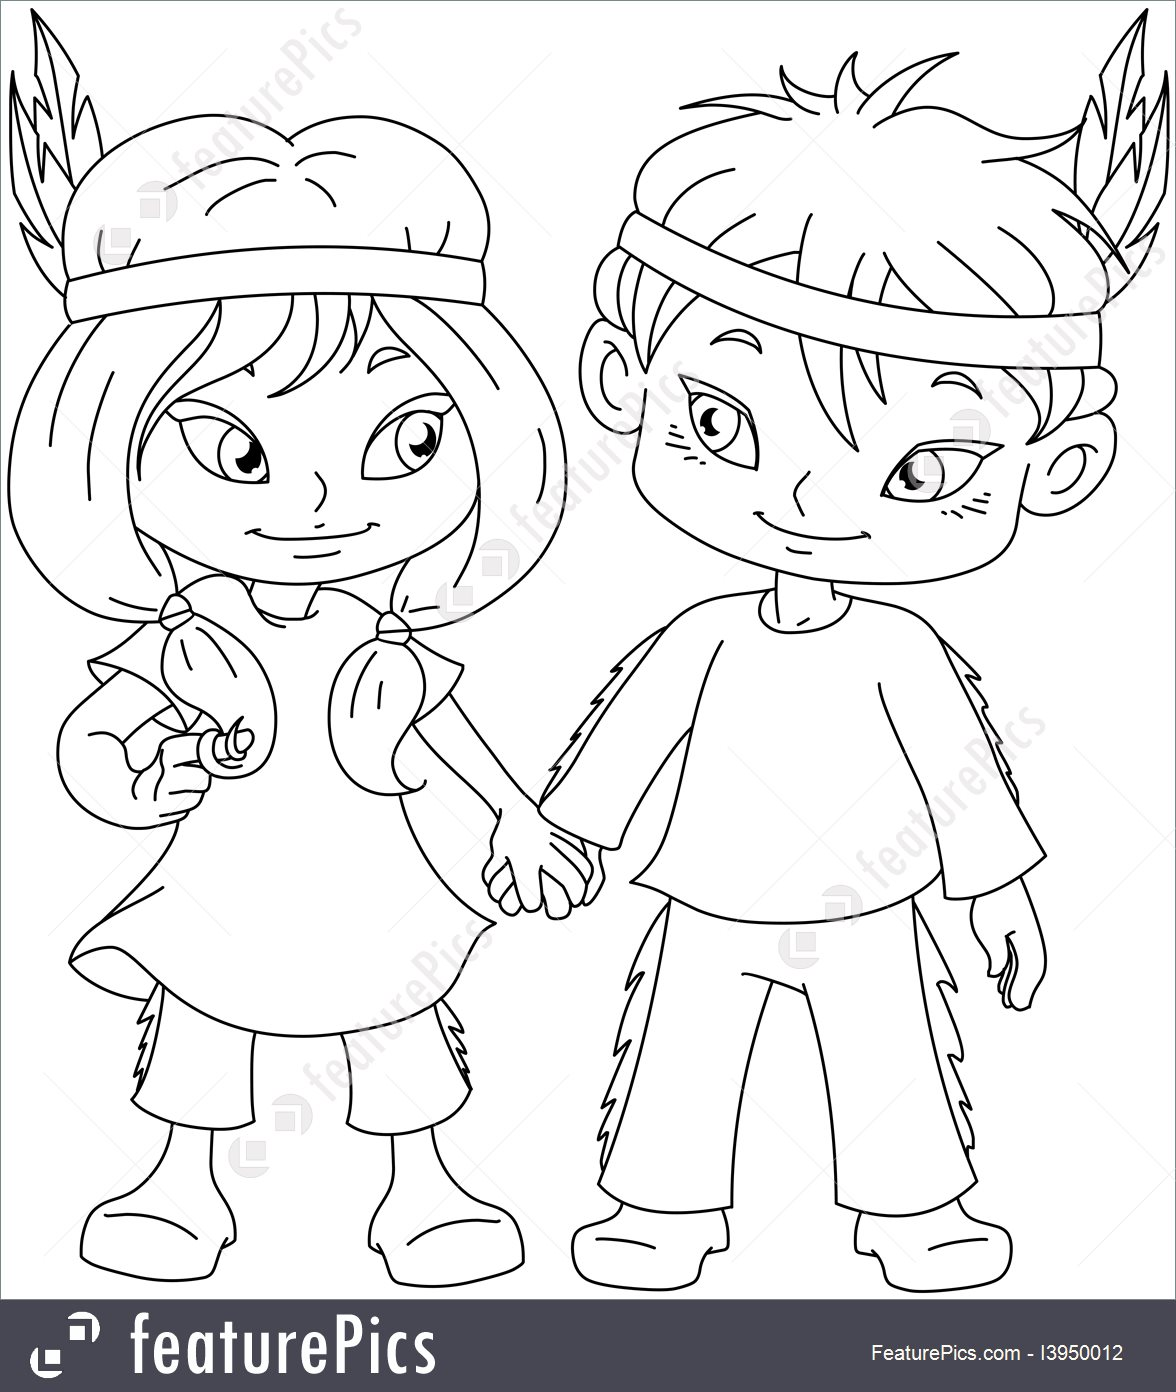 It is a graphic of Shocking indian girl coloring page